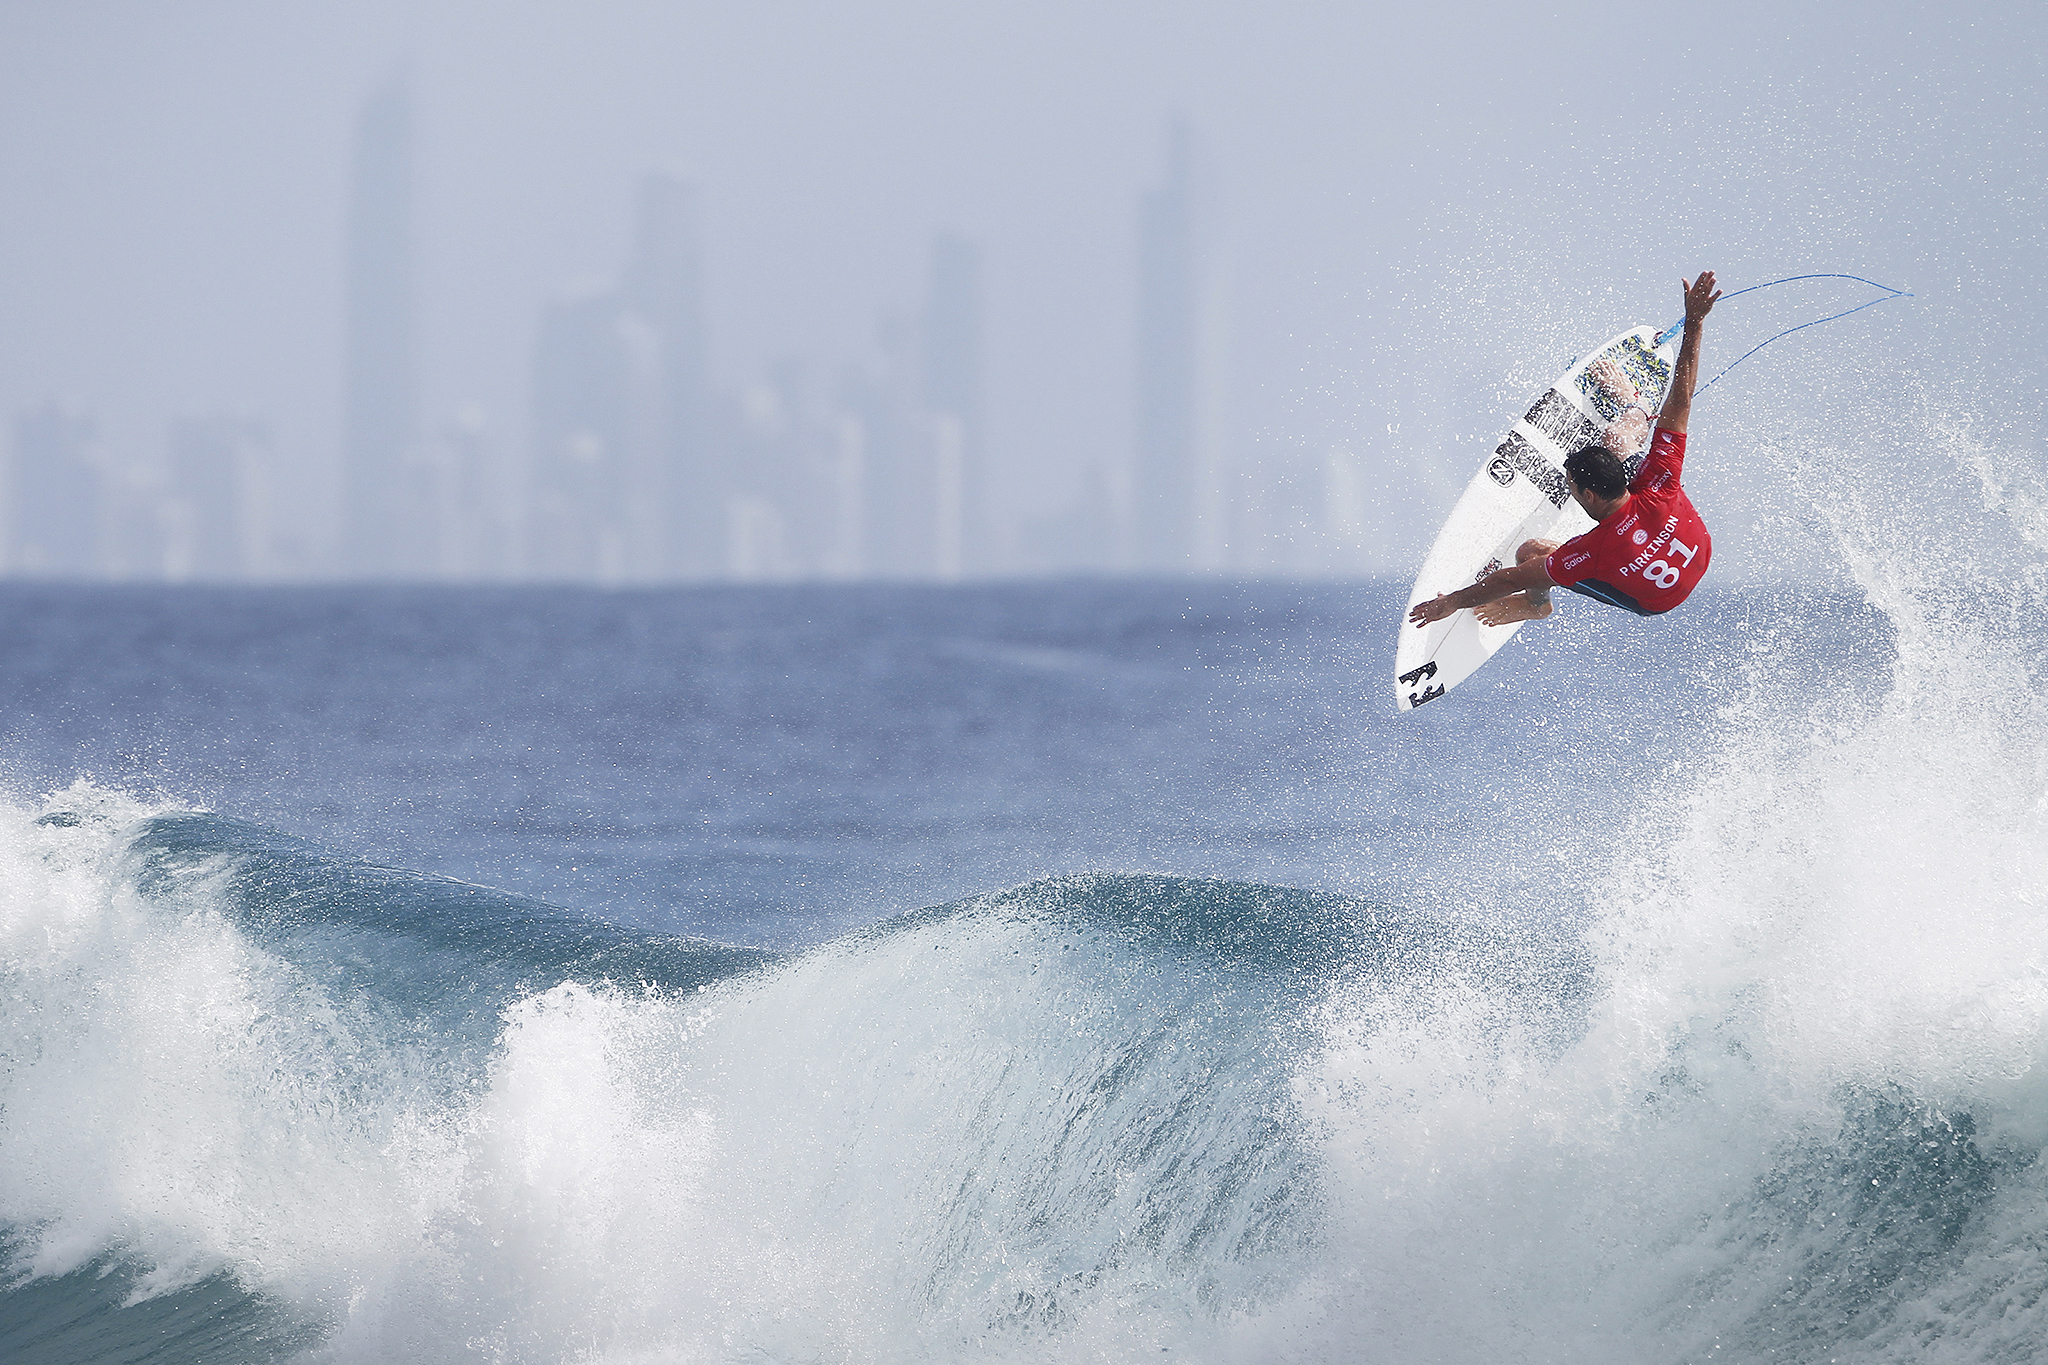 Joel Parkinson of Australia (pictured) winning his Round 3 heat with an excellent scoring ride to advance into ROund 4 of the Quiksilver Pro Gold Coast on Monday March 14, 2016. PHOTO CREDIT: ©WSL/ Kirstin SOCIAL MEDIA TAG: @wsl @kirstinscholtz The attached image is a hand-out image from the World Surf League and is royalty free for editorial use only, no commercial rights granted. The copyright is owned by World Surf League. Sale or license of the images is prohibited. ALL RIGHTS RESERVED.